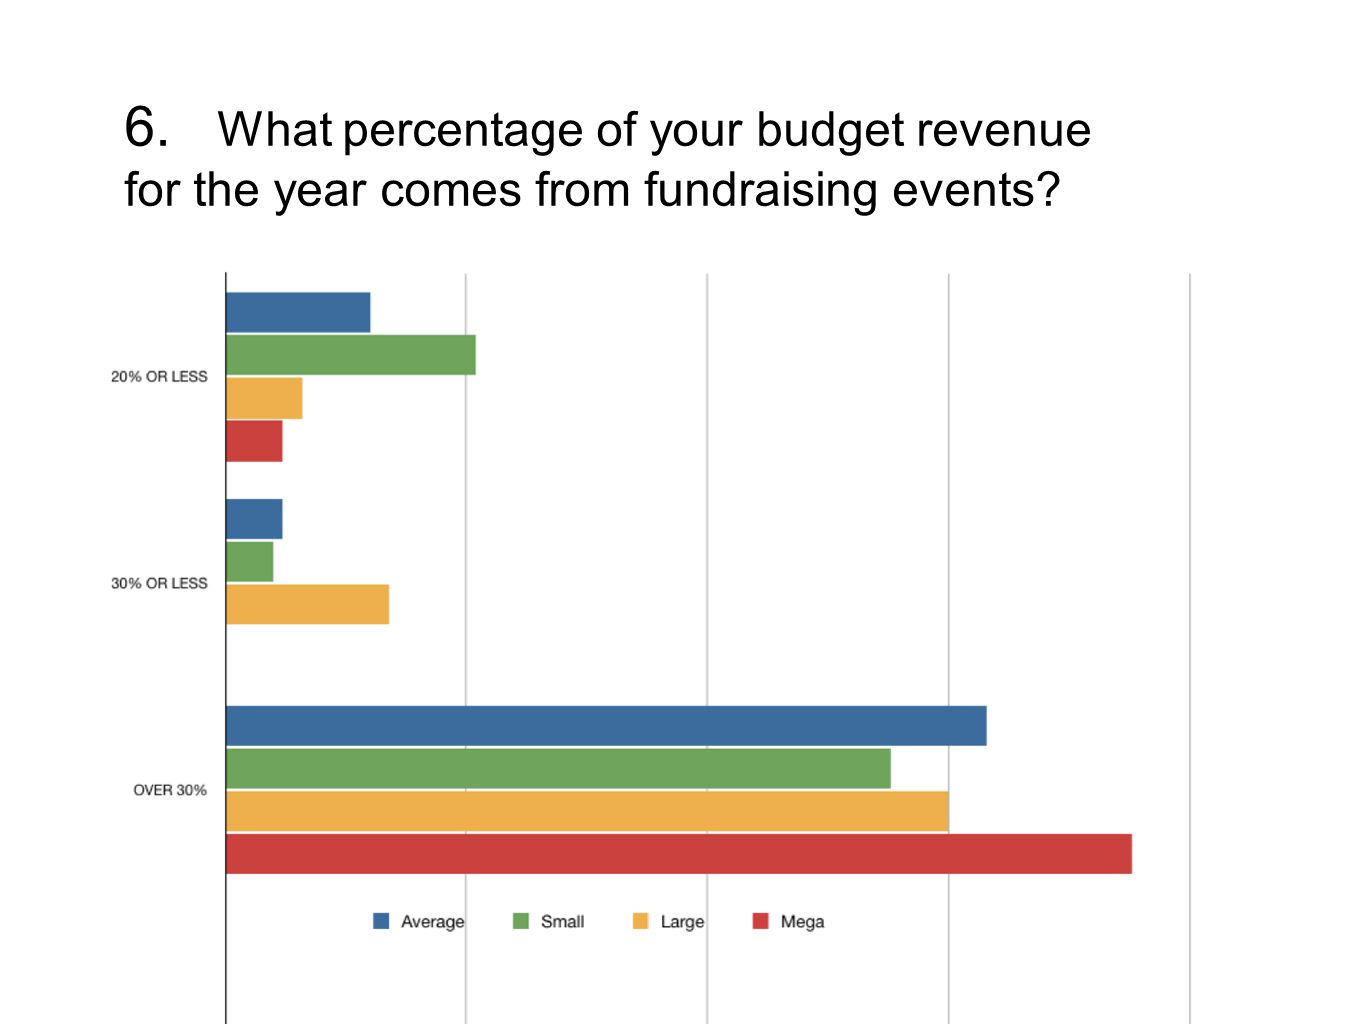 6. What percentage of your budget revenue for the year comes from fundraising events?